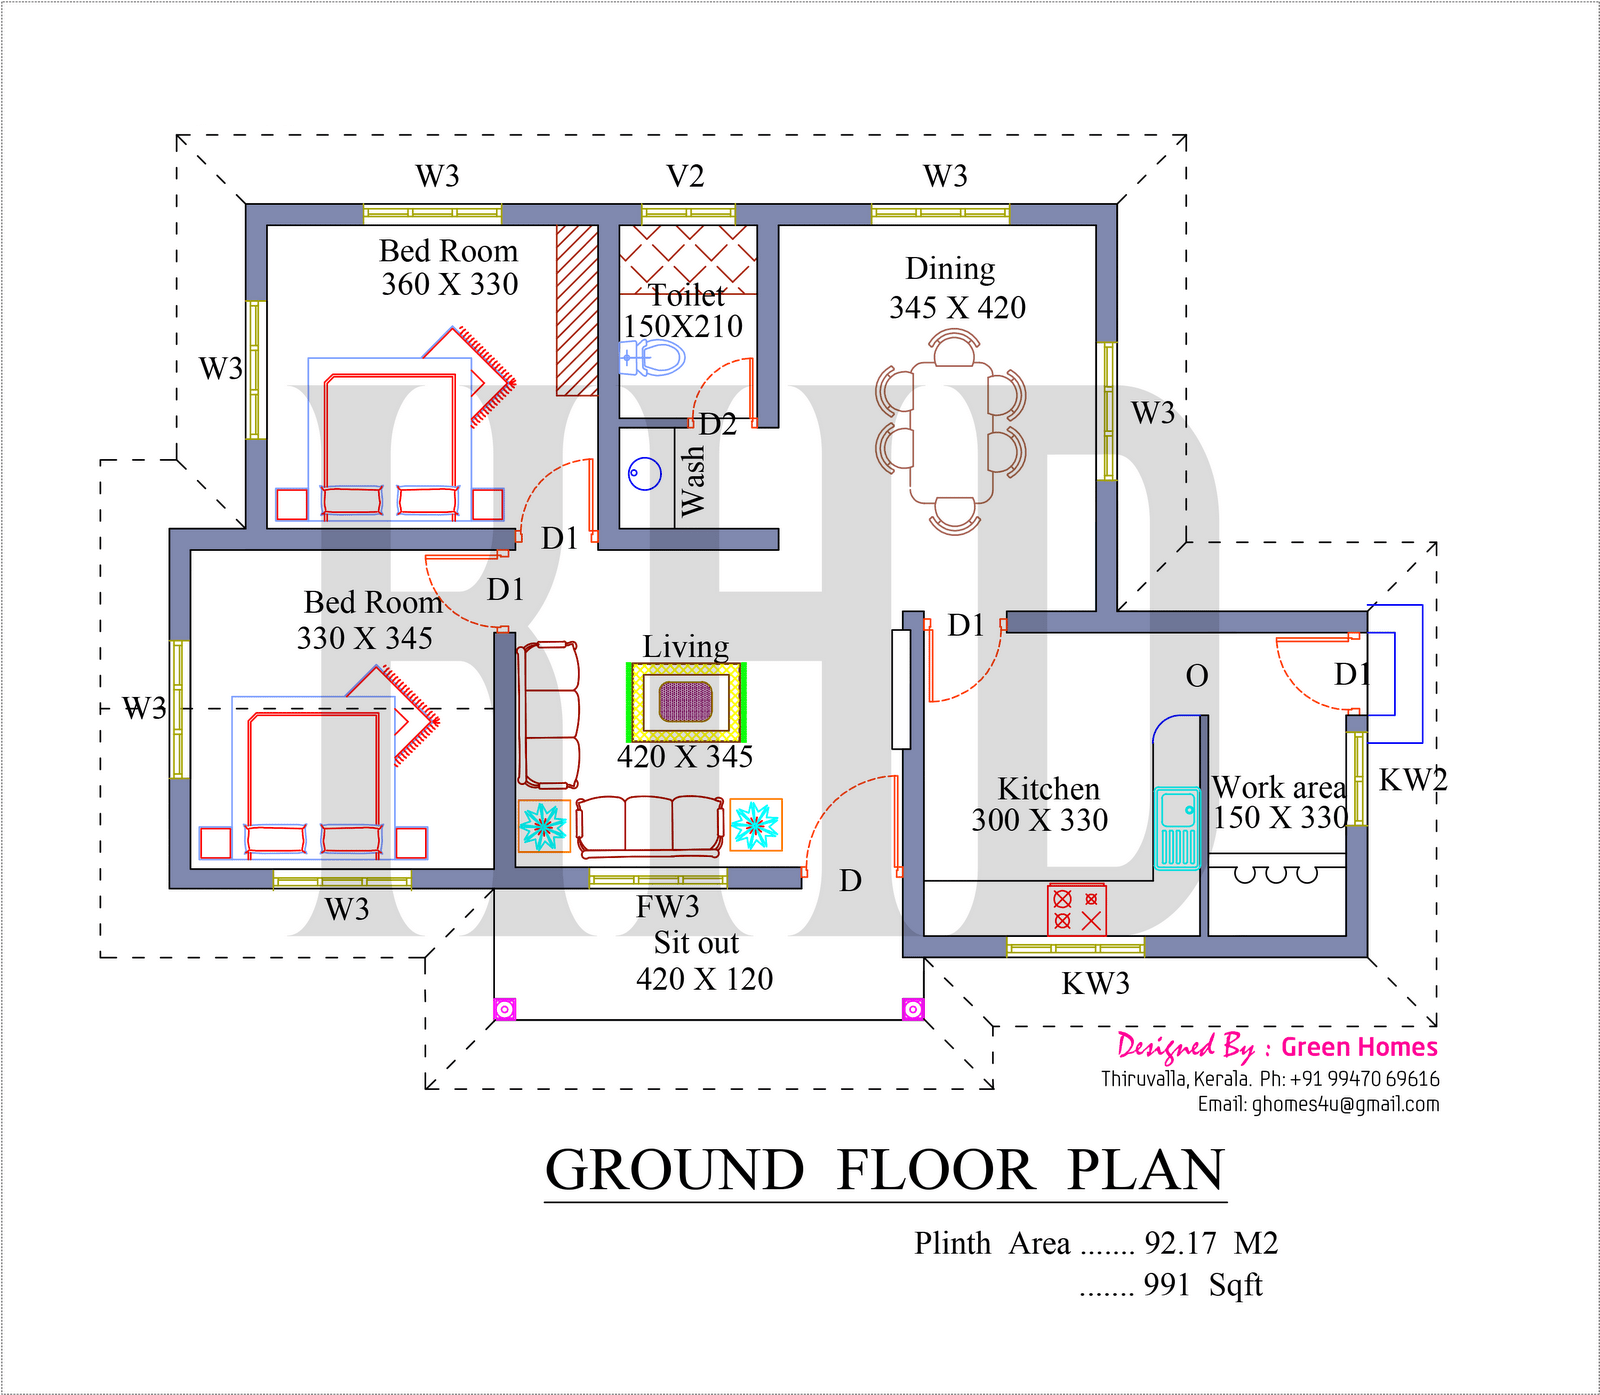 Home plans with estimated building costs